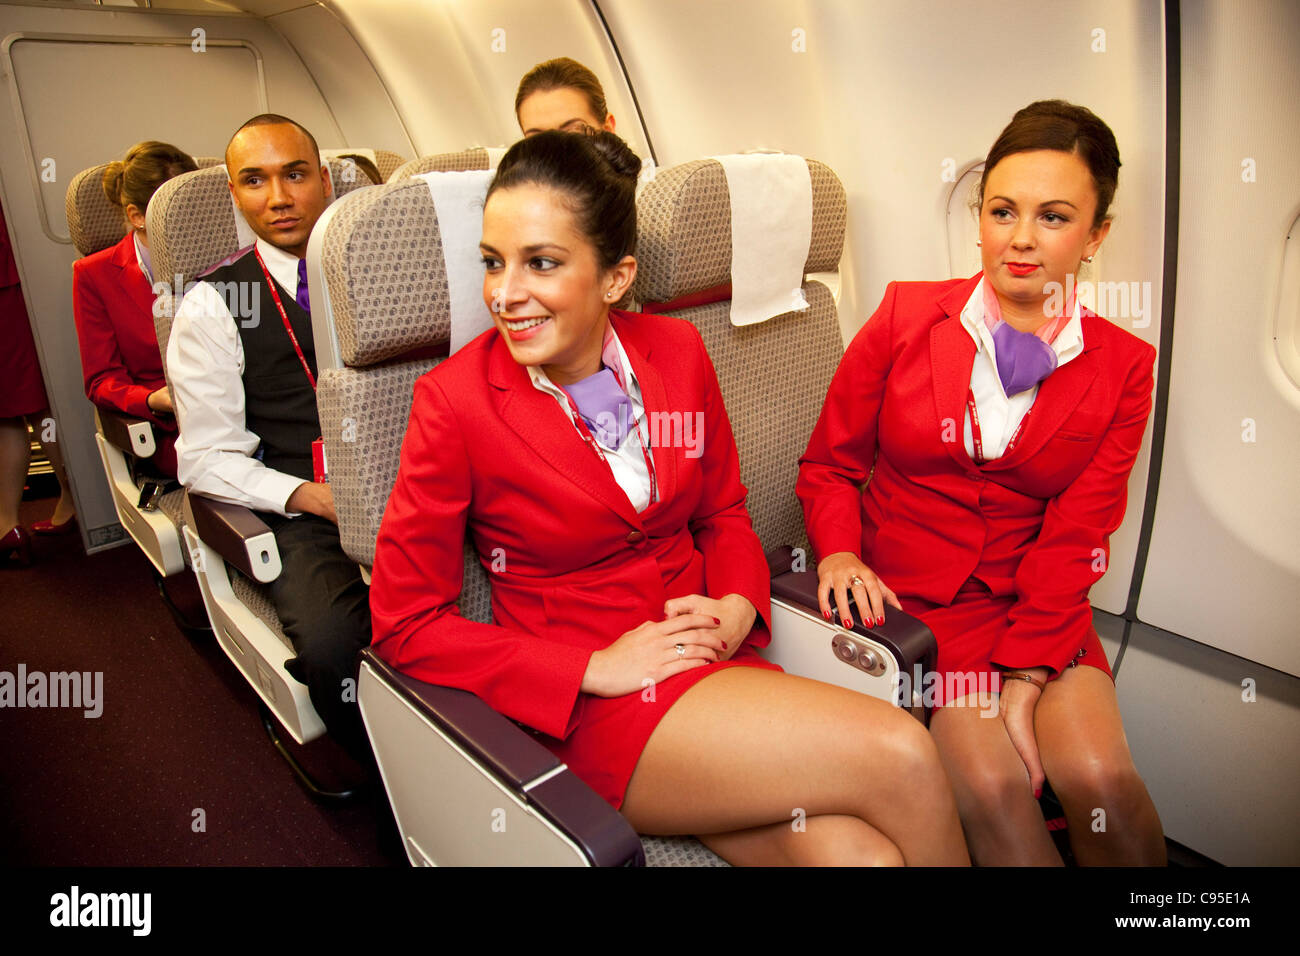 virgin atlantic vision mission and history Virgin australia holdings limited (vah) is a company limited by shares, incorporated group until 30 june 2013 and his past directorships include virgin atlantic ltd, virgin holidays ltd, virgin america inc and air asia x david was.